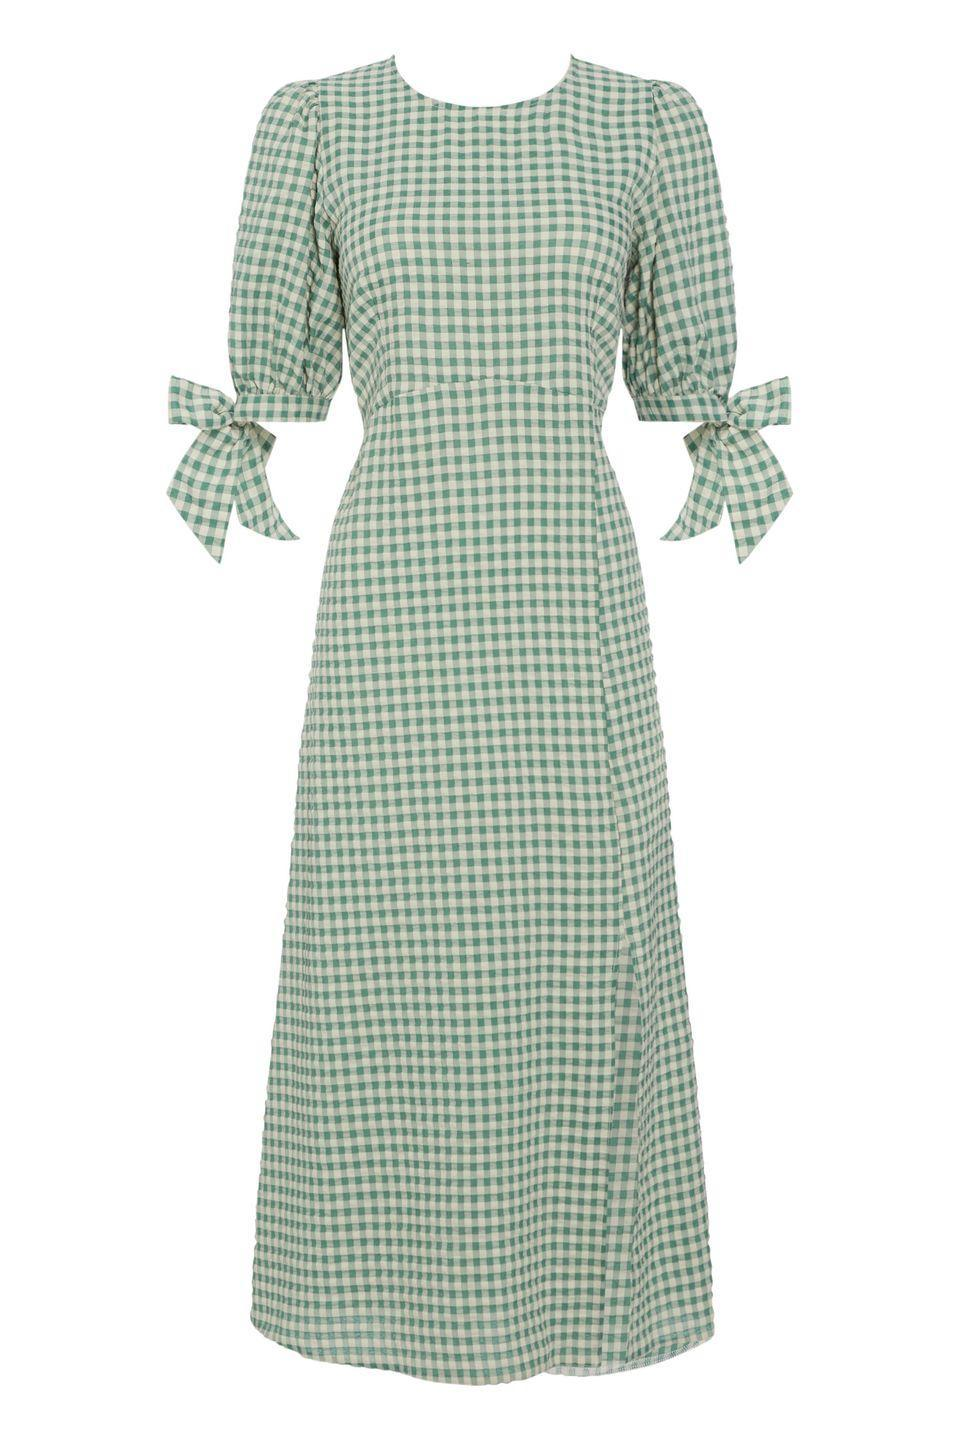 """<p><a class=""""link rapid-noclick-resp"""" href=""""https://www.nobodyschild.com/clothing/dresses/midi-dresses/green-textured-gingham-esme-midi-dress.html"""" rel=""""nofollow noopener"""" target=""""_blank"""" data-ylk=""""slk:SHOP NOW"""">SHOP NOW</a></p><p>Consider this Nobody's Child dress a summer classic. Its flattering silhouette, sweet bow sleeves and muted green gingham make it feminine without feeling saccharine. We'd team it with a pair of trainers and a basket bag.</p><p>Esme midi dress, £45, <a href=""""https://www.nobodyschild.com/clothing/dresses/midi-dresses/green-textured-gingham-esme-midi-dress.html"""" rel=""""nofollow noopener"""" target=""""_blank"""" data-ylk=""""slk:Nobody's Child"""" class=""""link rapid-noclick-resp"""">Nobody's Child</a></p>"""